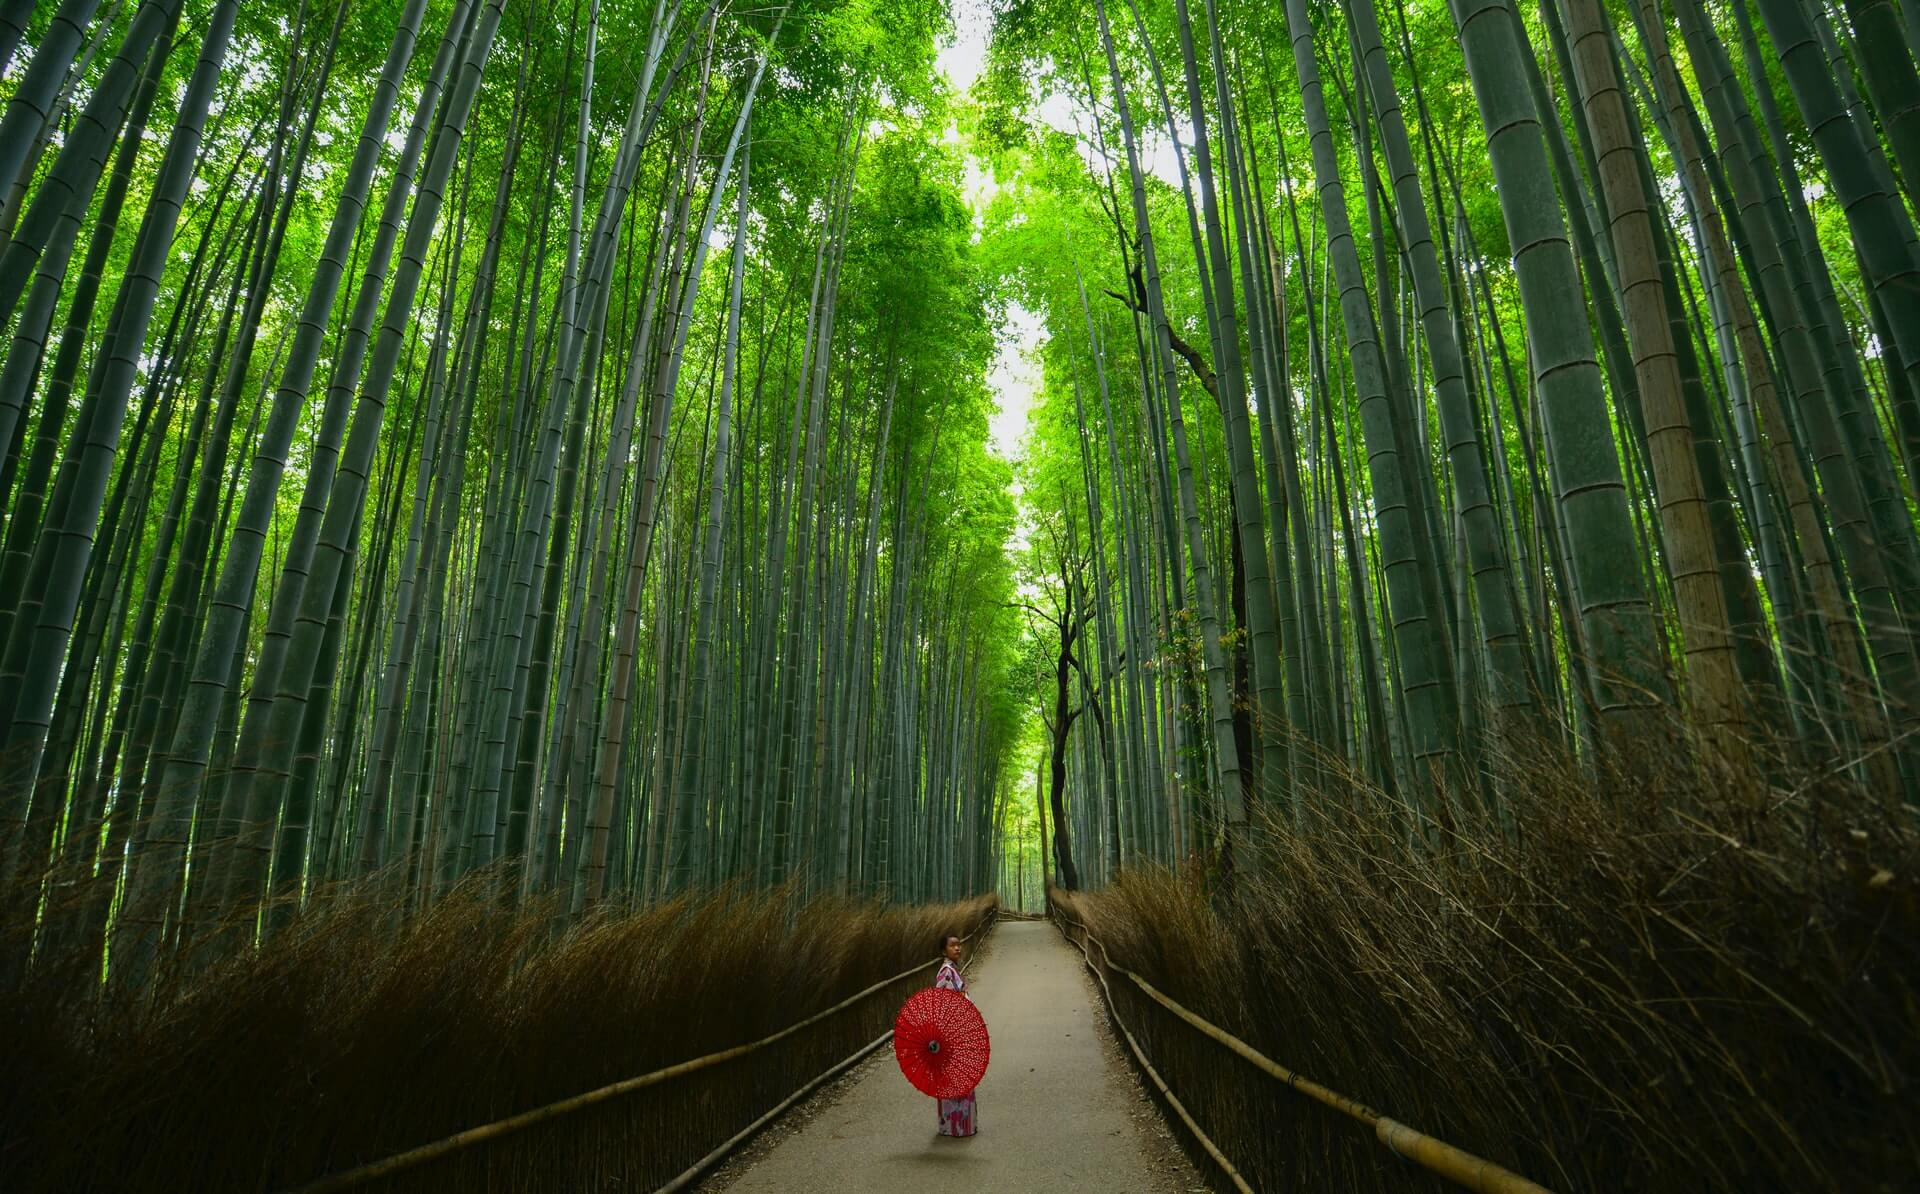 A traveller entering Arashiyama Bamboo Grove, Kyoto - a top sight in Japan to see